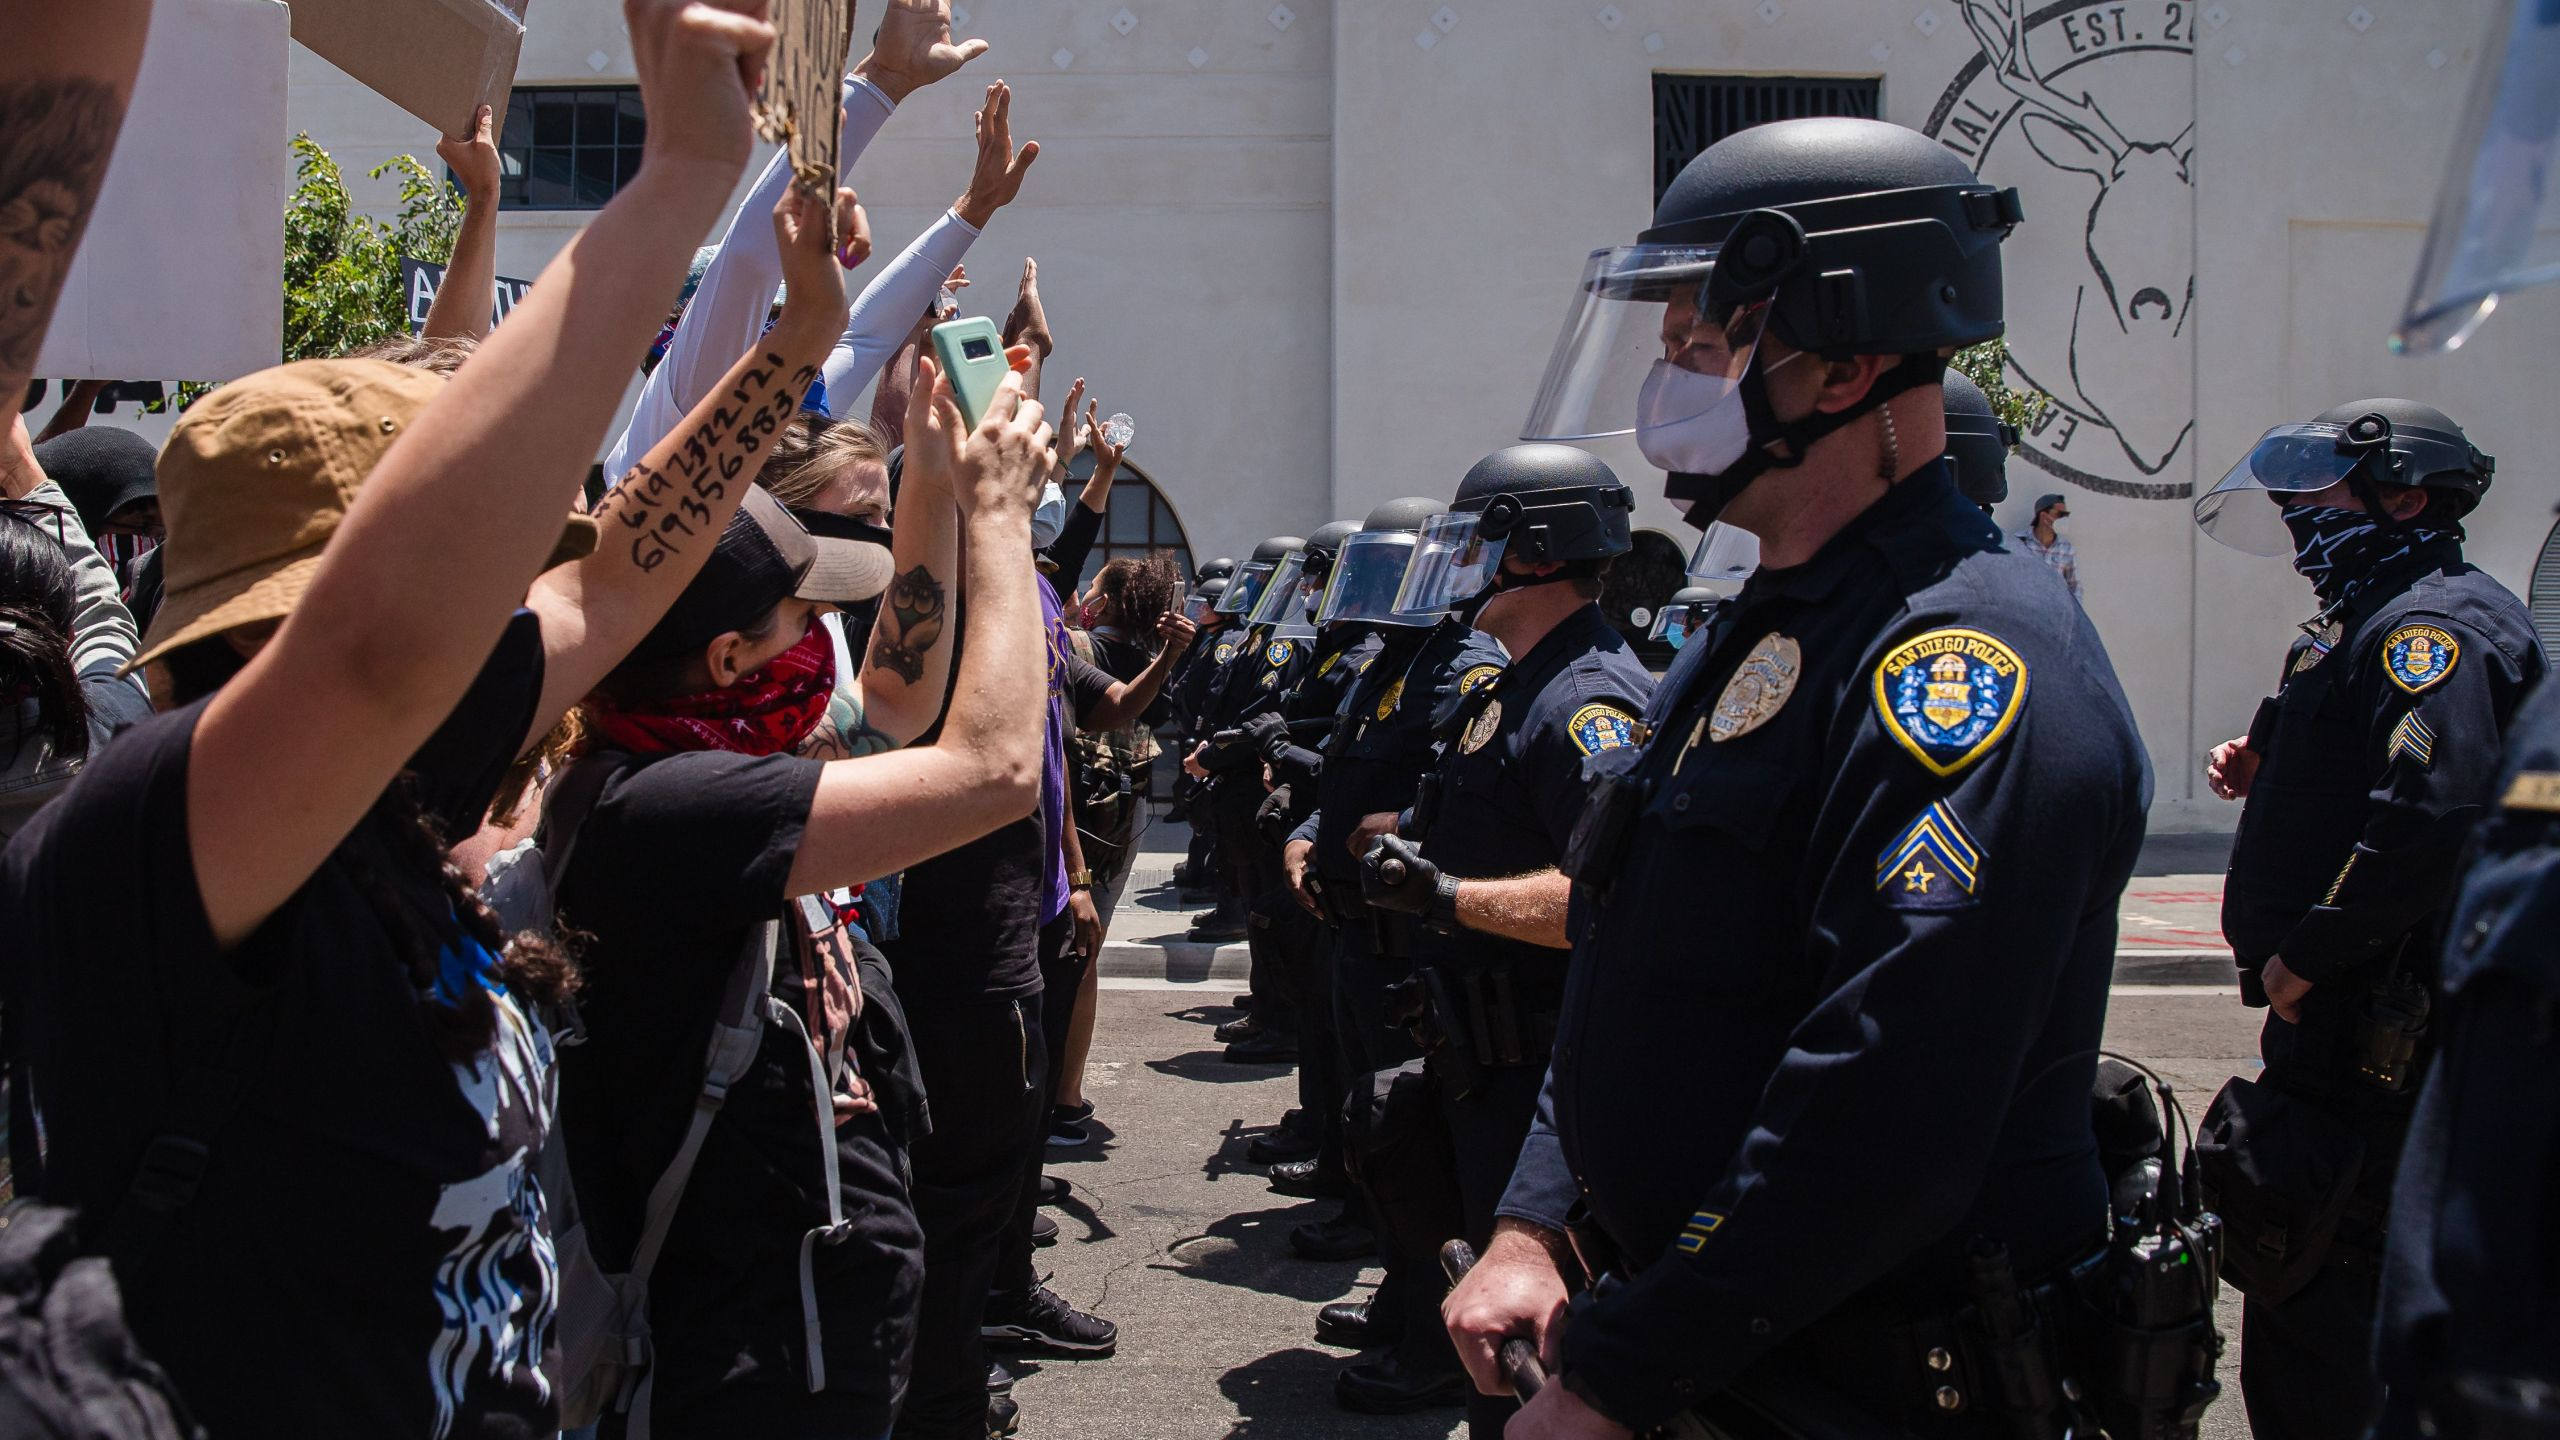 Demonstrators face-off with officers in front of the San Diego Police in downtown San Diego, California on May 31, 2020 as they protest the death of George Floyd. (ARIANA DREHSLER/AFP via Getty Images)